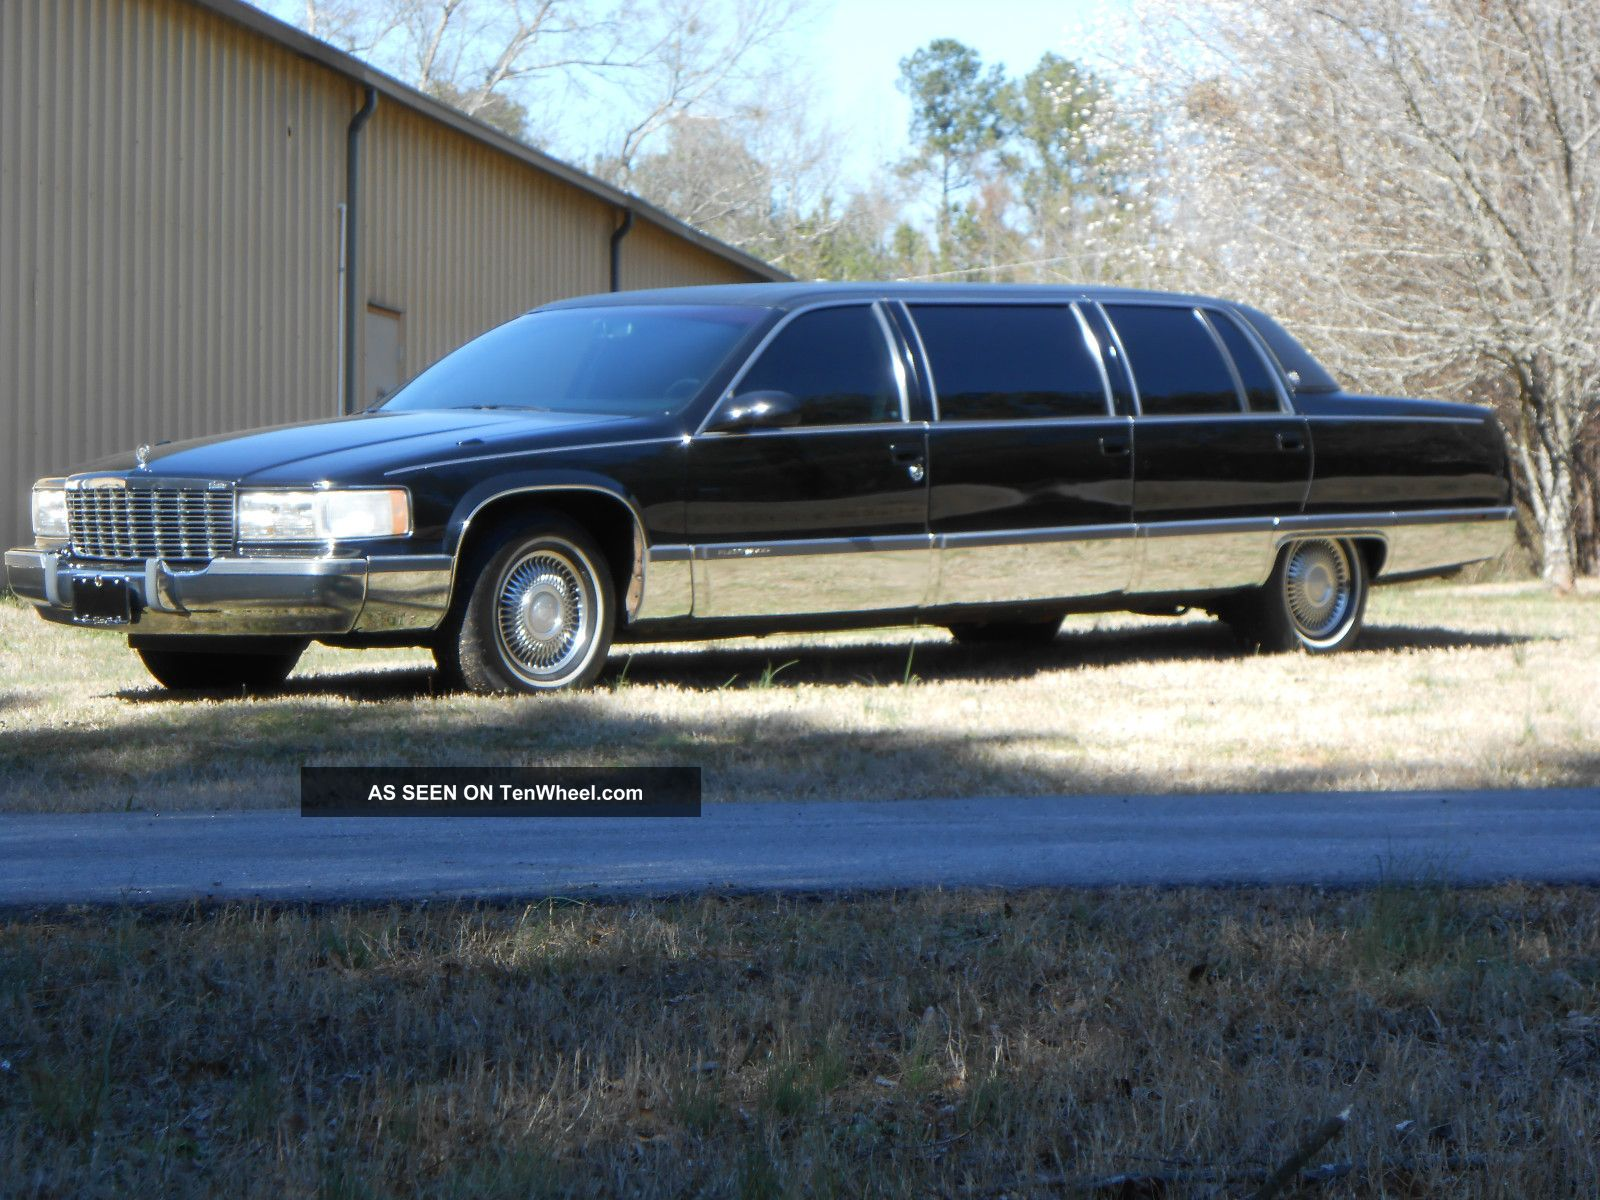 1995 cadillac fleetwood limousine black 50 inch stretch miller meteor tenwheel